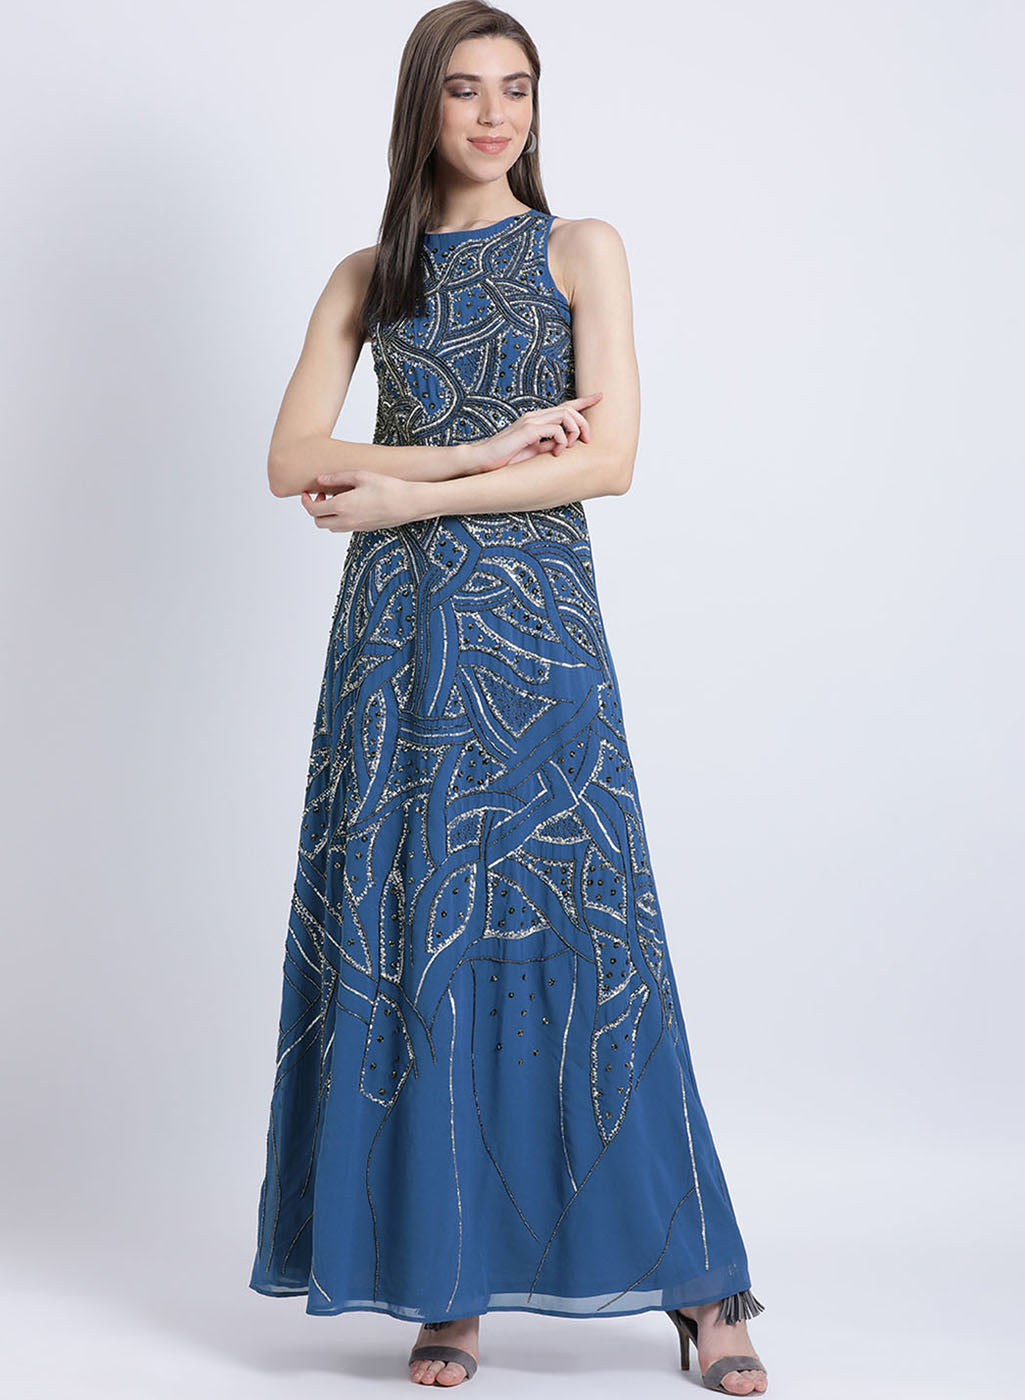 Daniel Embellishment Maxi Dress